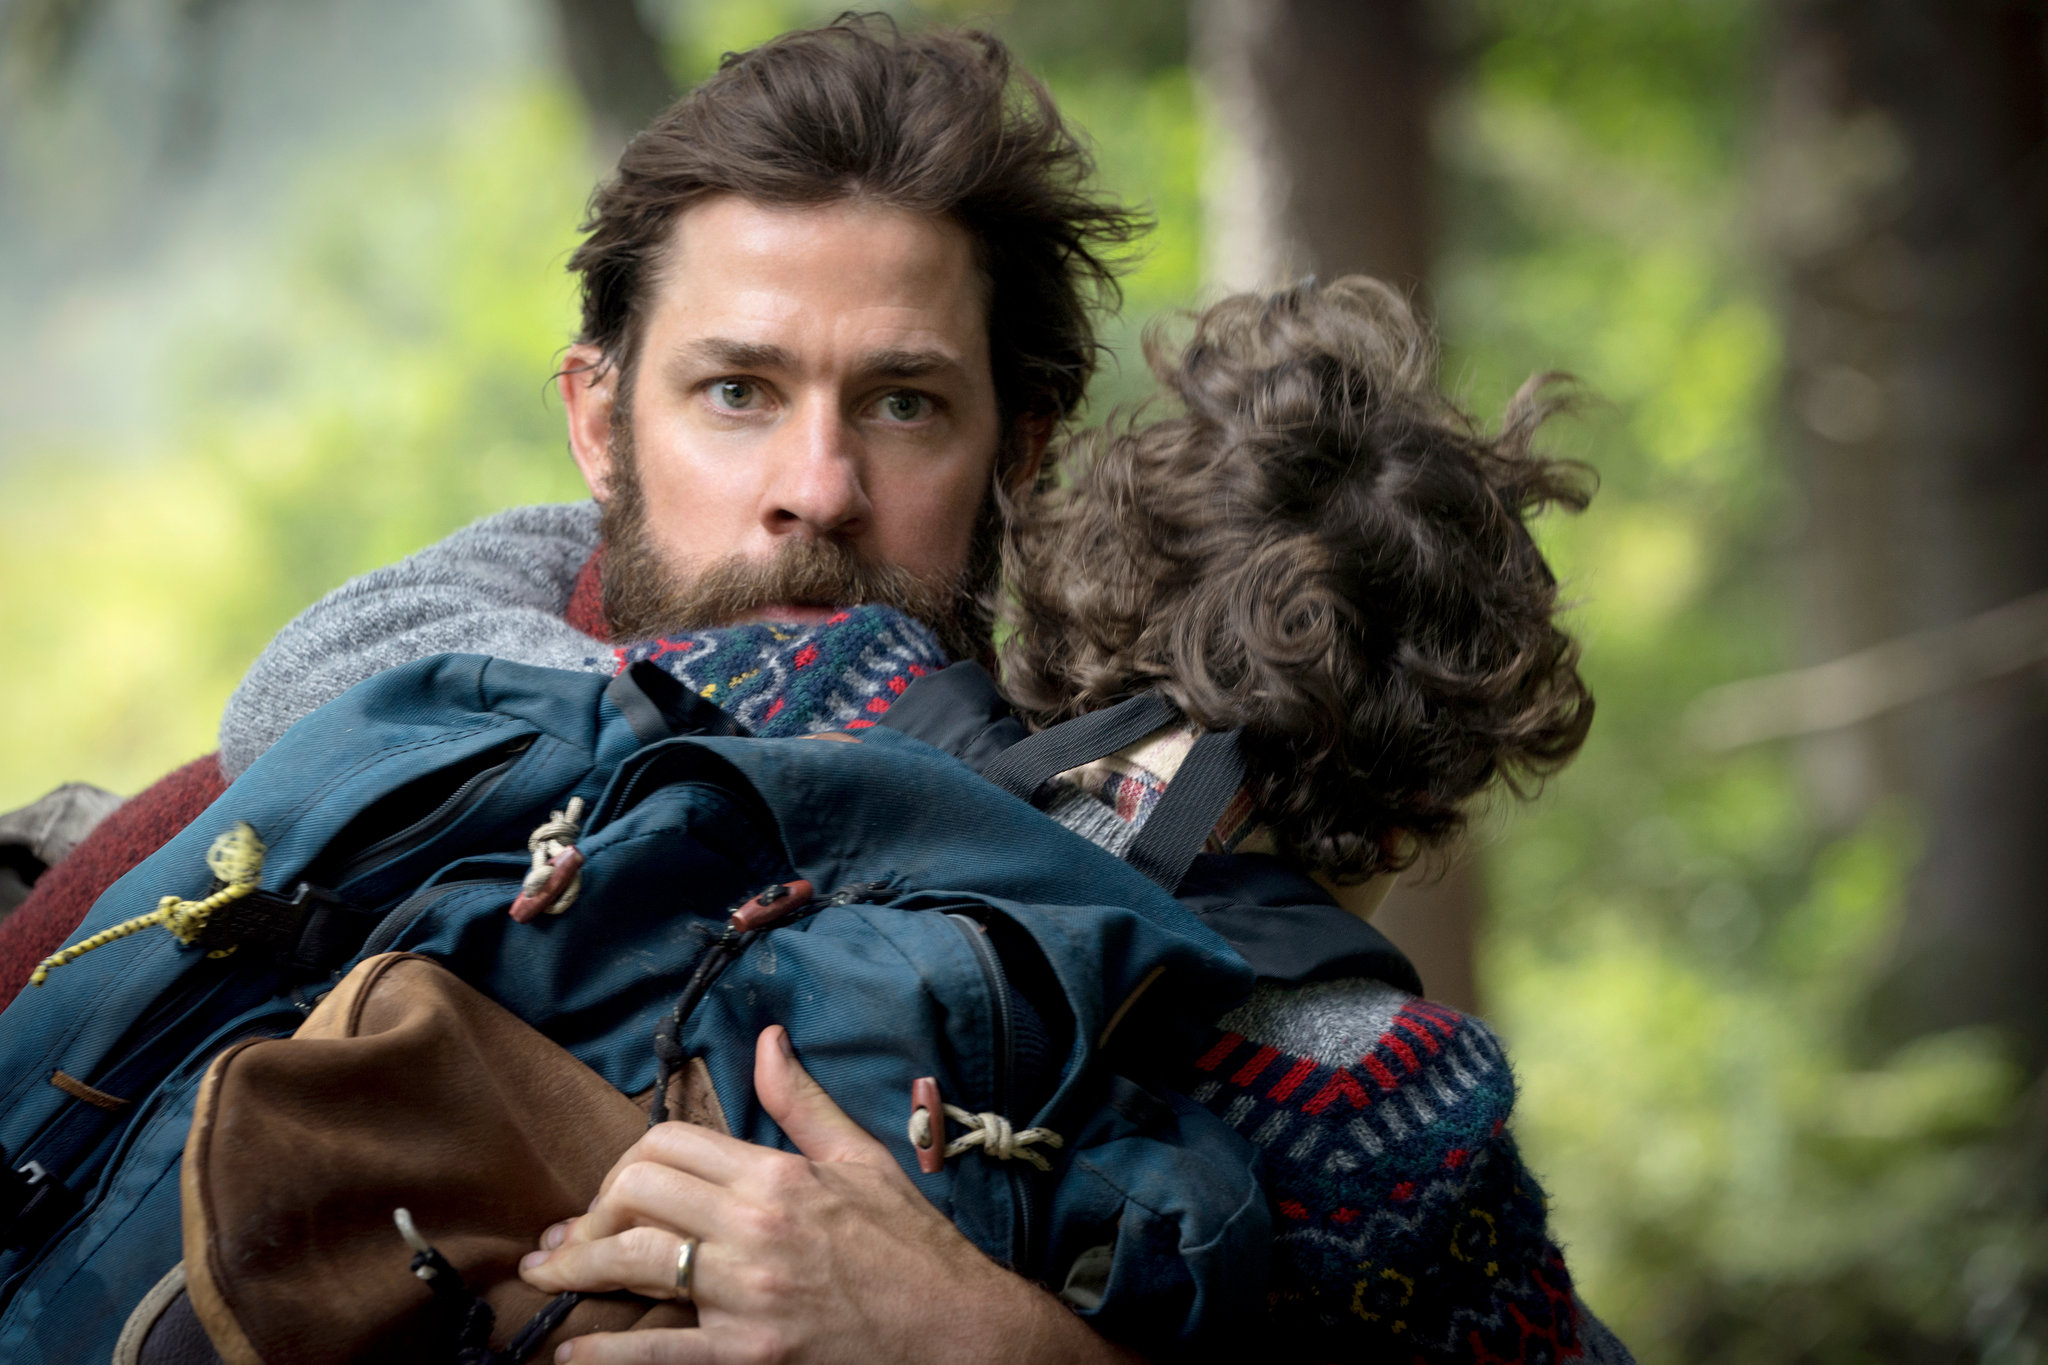 A Quiet Place: When Your Worldview Won't Let You Enjoy A Movie Anymore